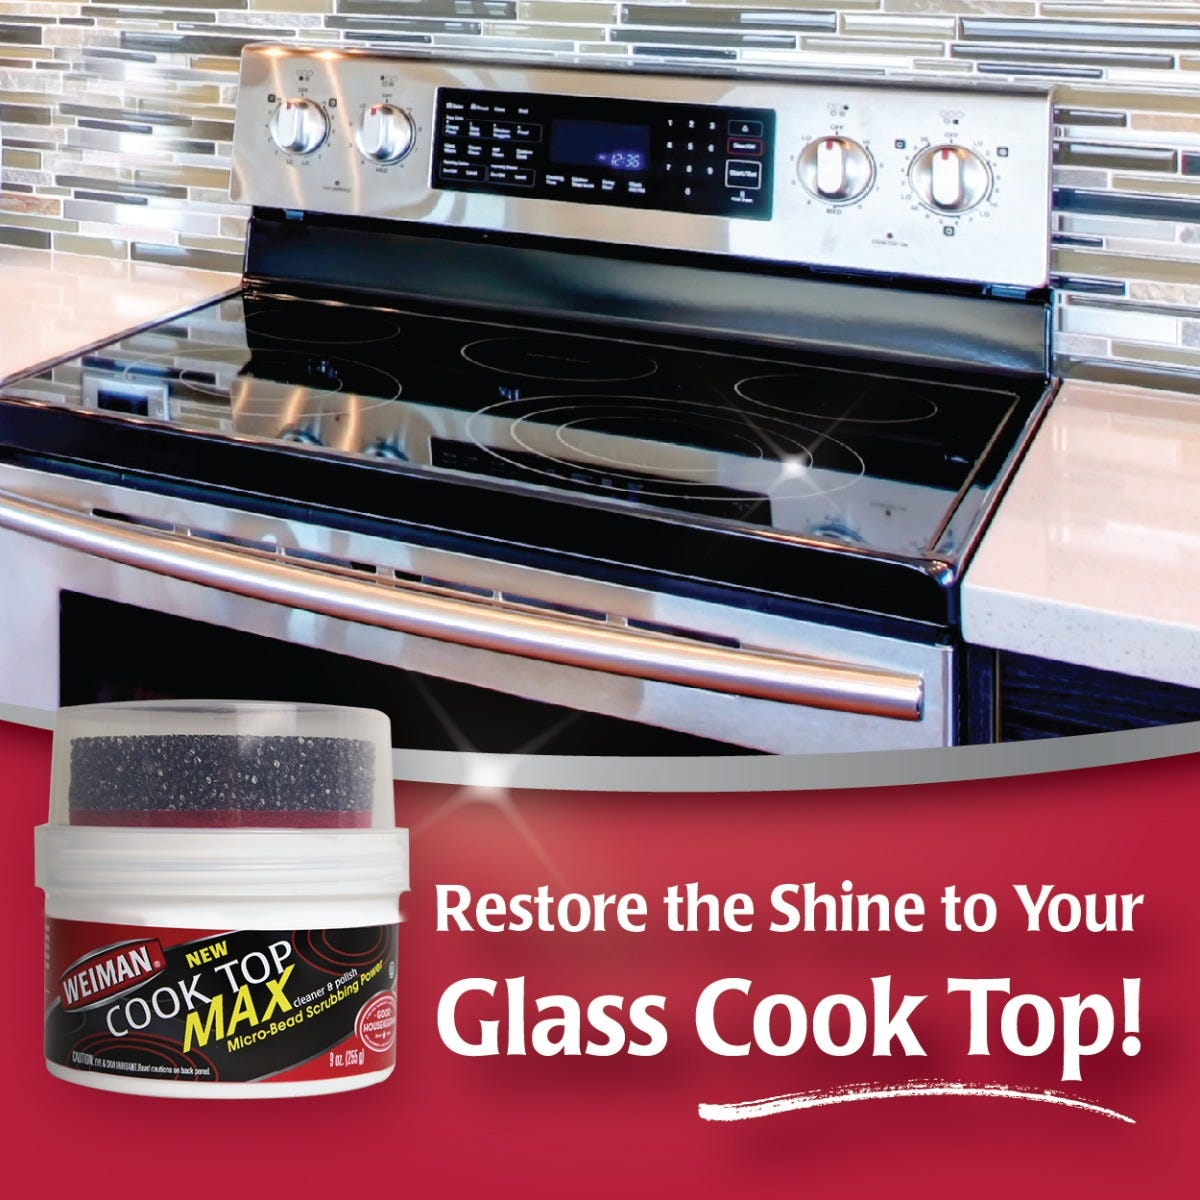 https://googone.com/media/catalog/product/w/e/weiman_cooktop_max_benefits1.jpg